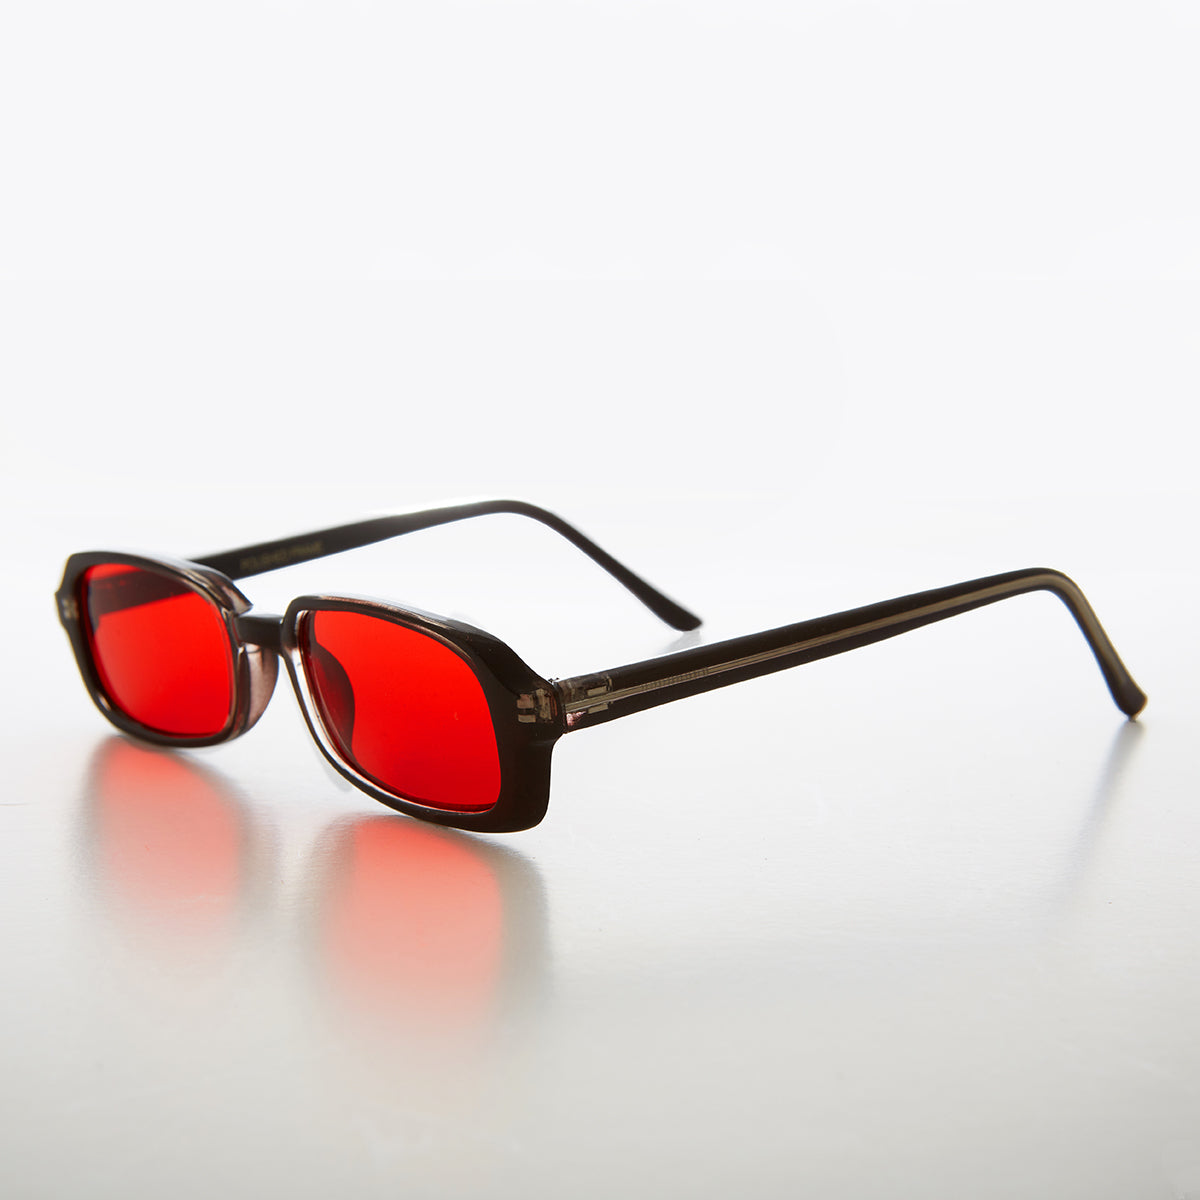 Rectangular red Color Tinted Lens 90s Vintage Sunglass